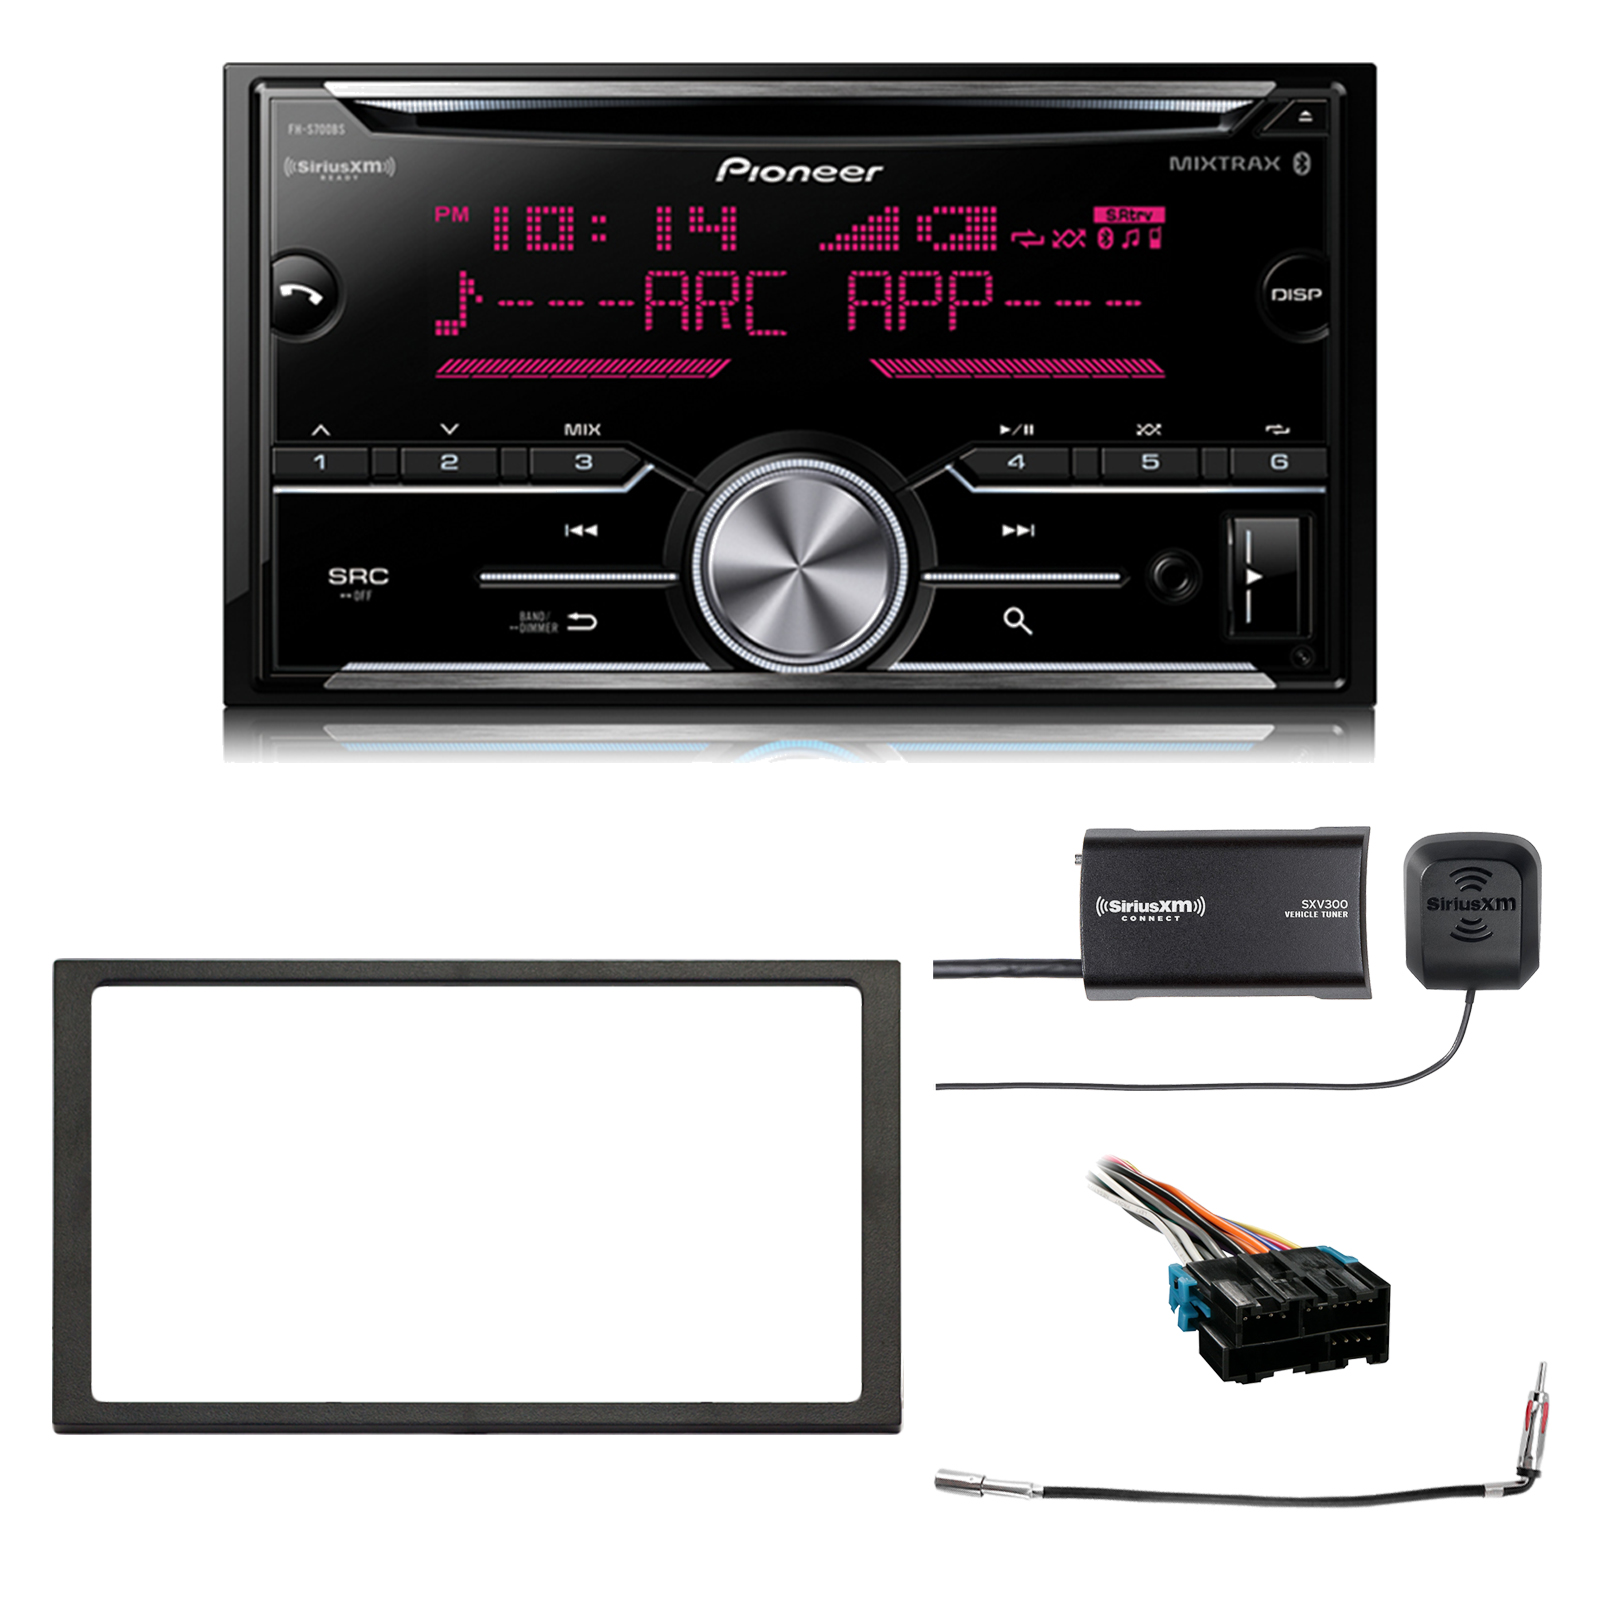 Pioneer Double DIN CD MIXTRAX Bluetooth SiriusXM-Ready Receiver, Enrock 2-DIN Install Dash Kit, Metra Radio Wiring Harness, Antenna Adapter, SiriusXM Satellite Tuner Kit (Select 1994-2005 Vehicles)